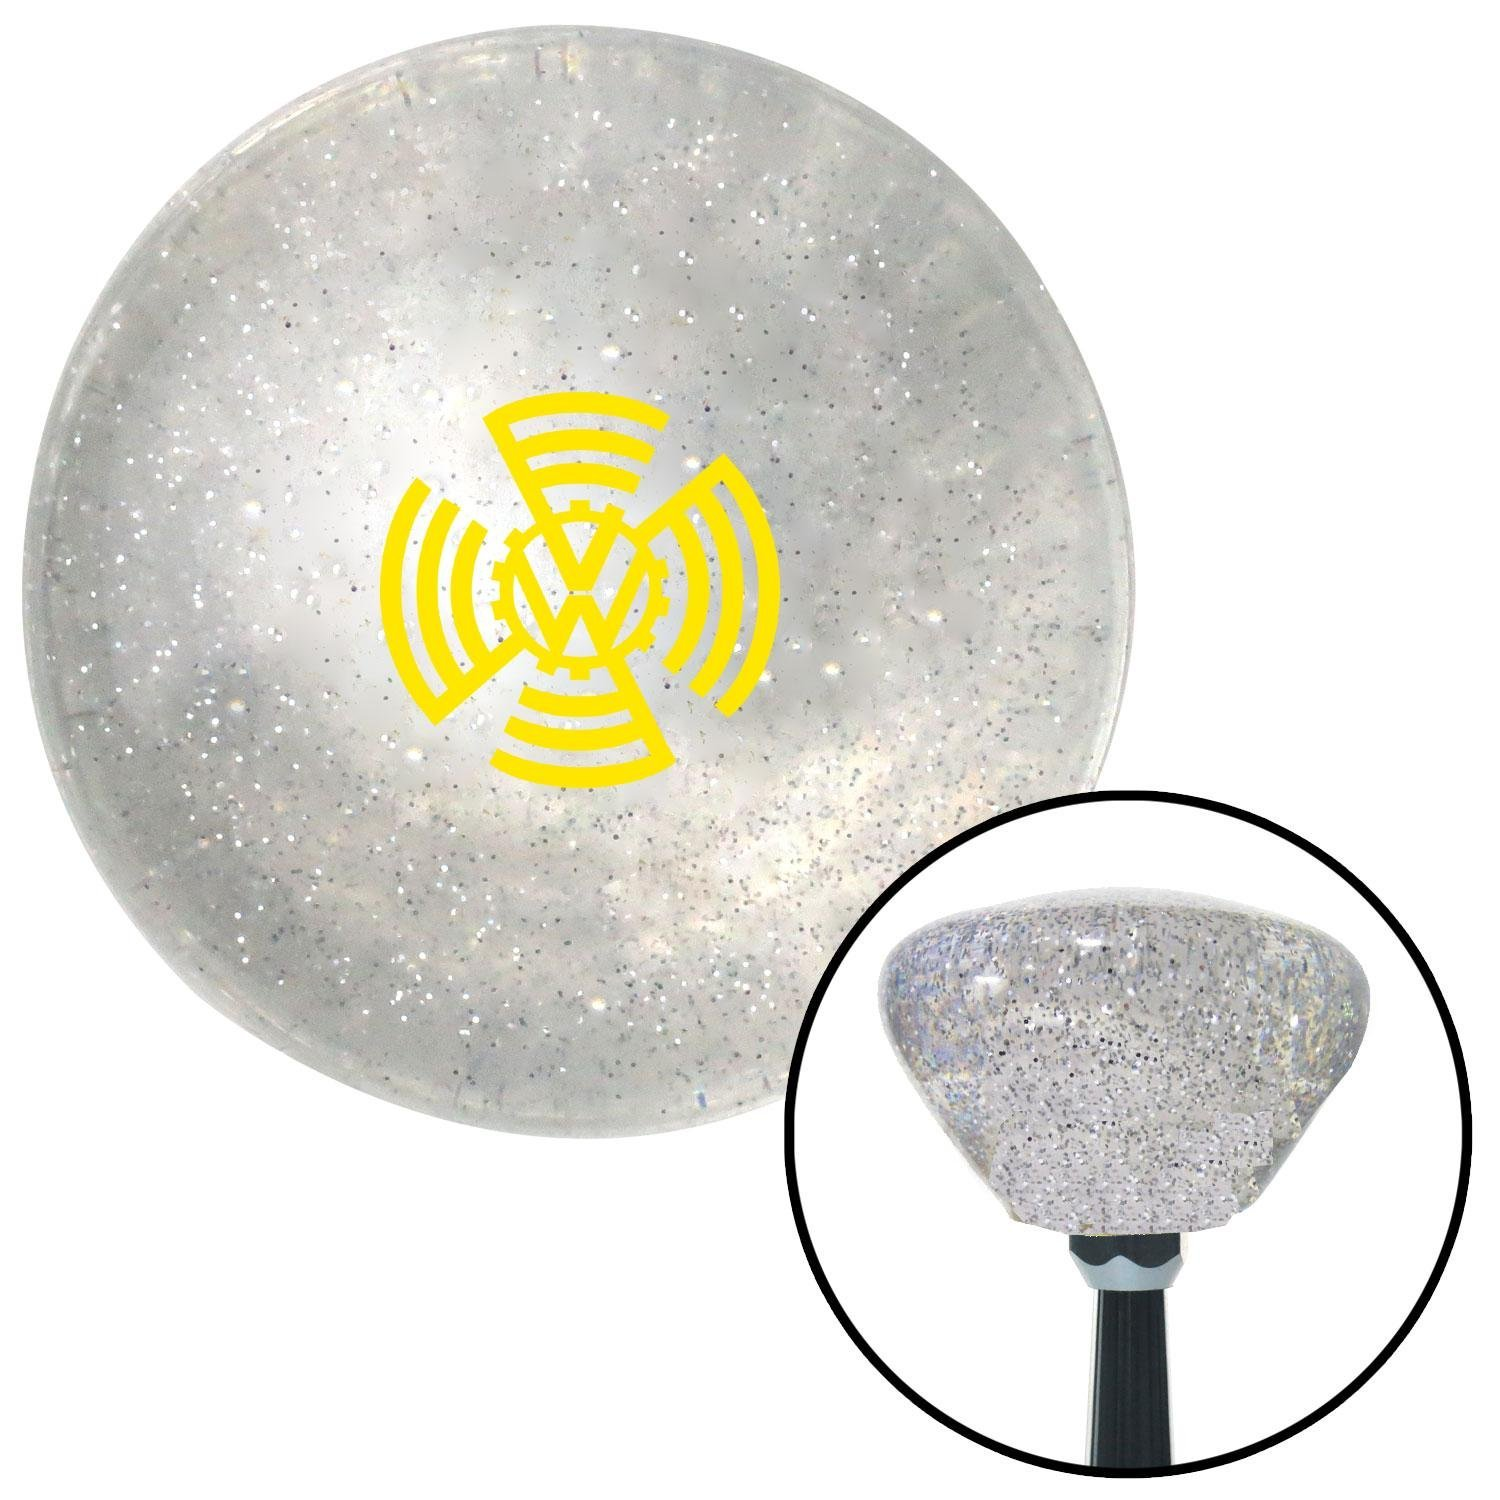 American Shifter 286833 Shift Knob Yellow VW Cog 1937 Clear Retro Metal Flake with M16 x 1.5 Insert